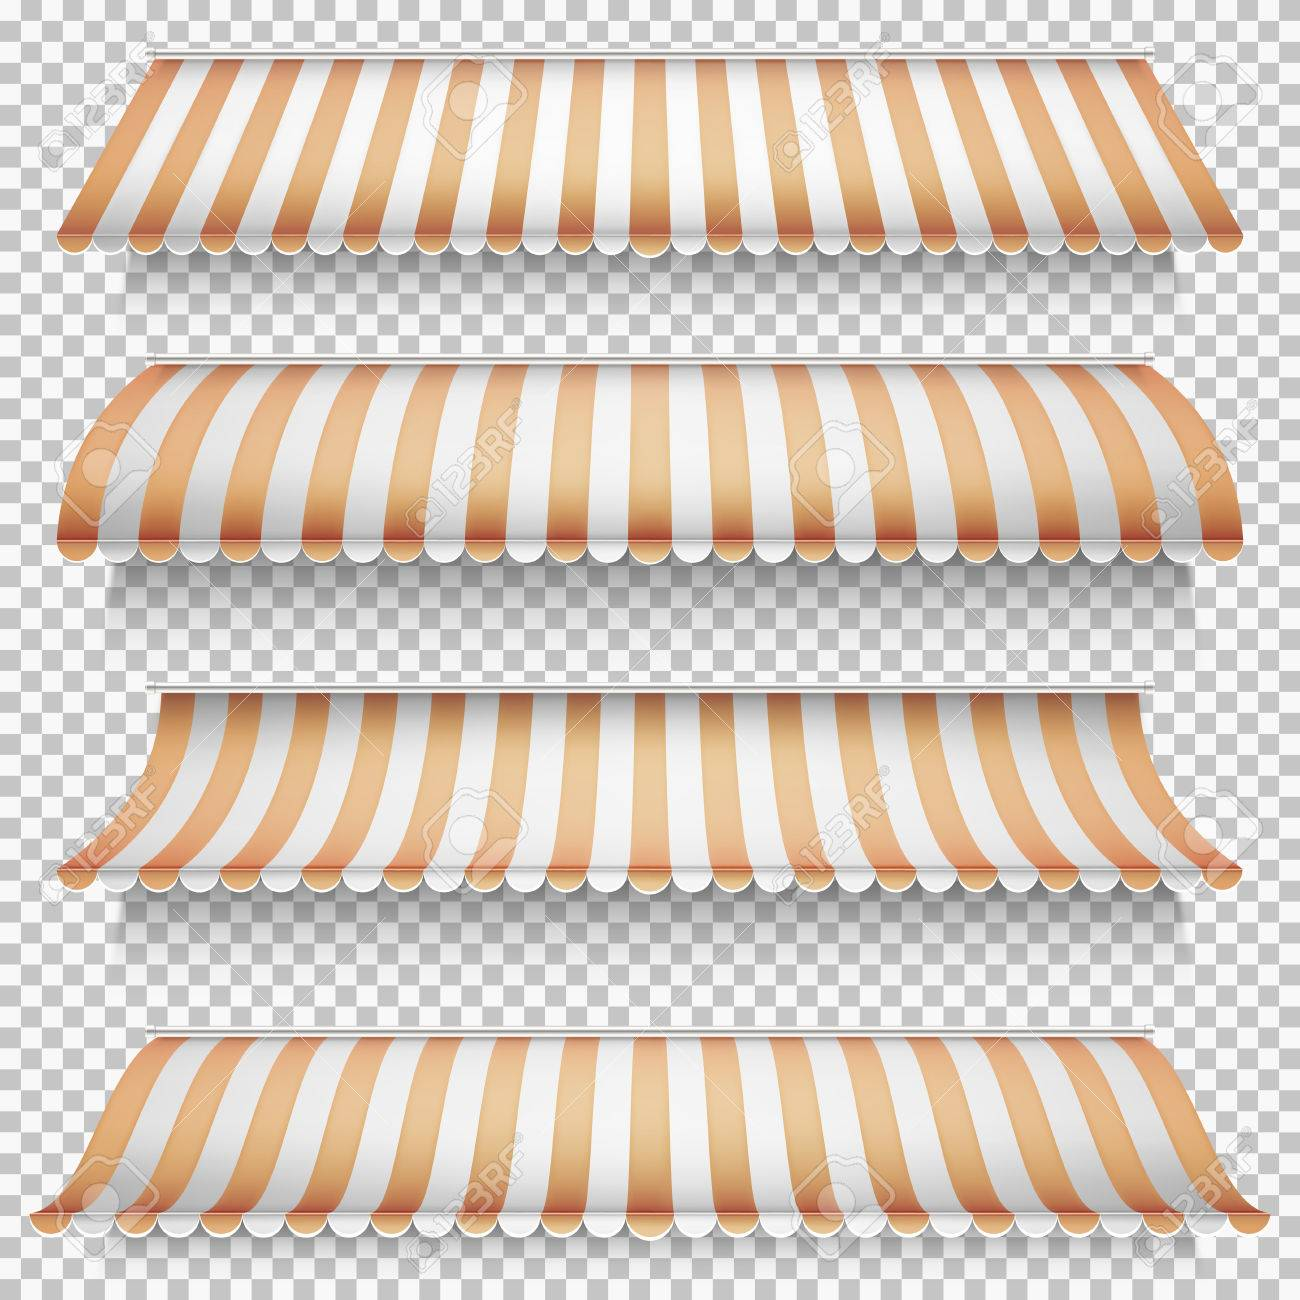 Colored awnings set on transparent background. EPS 10 vector file included - 67487091